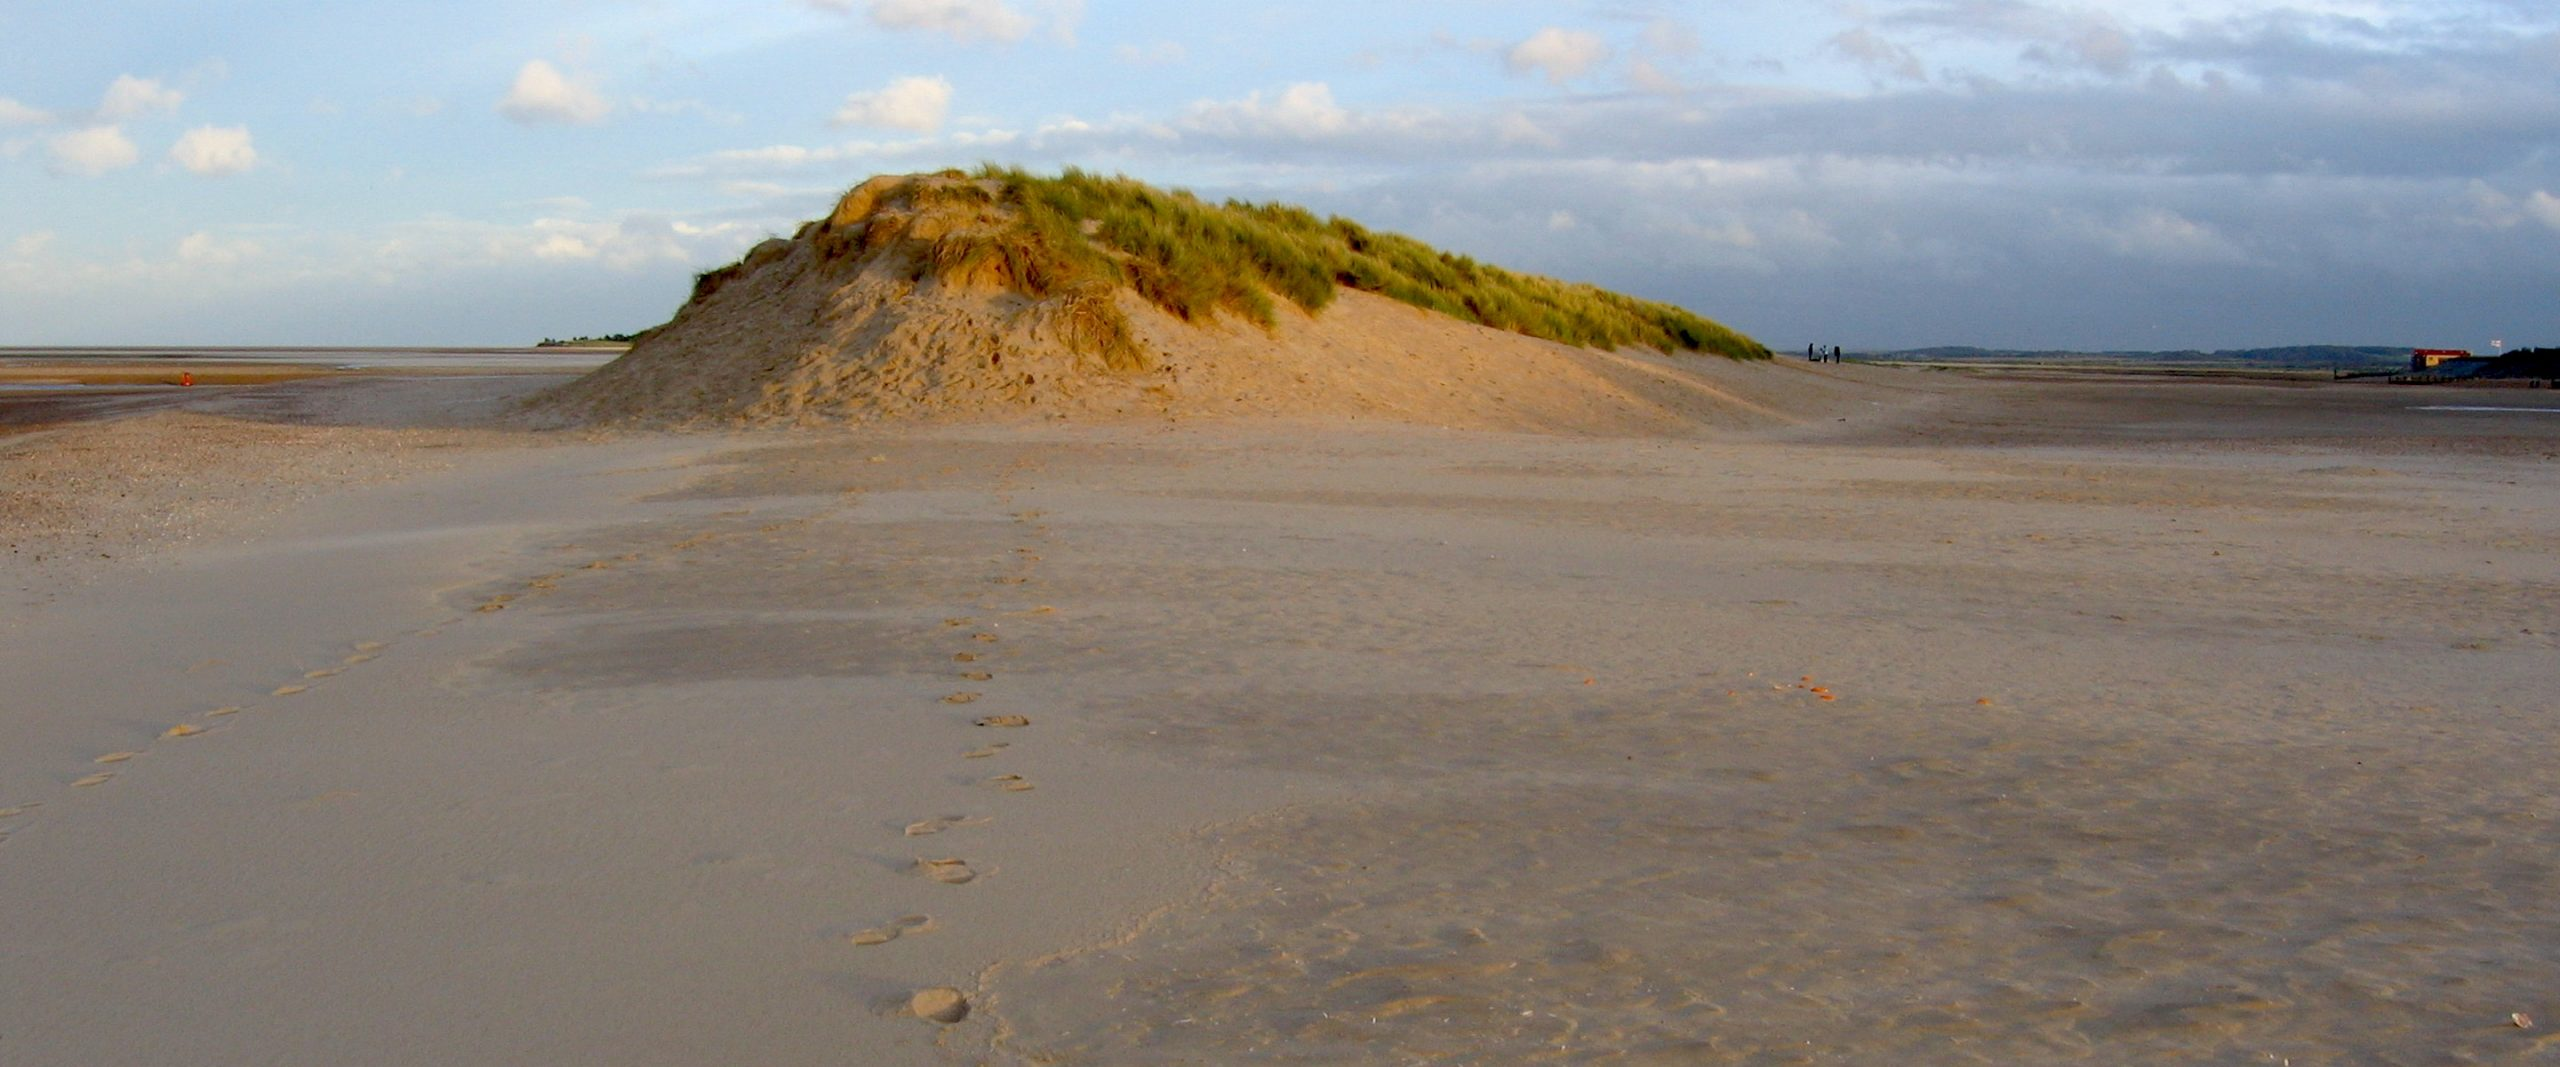 Sanddune, Norfolk